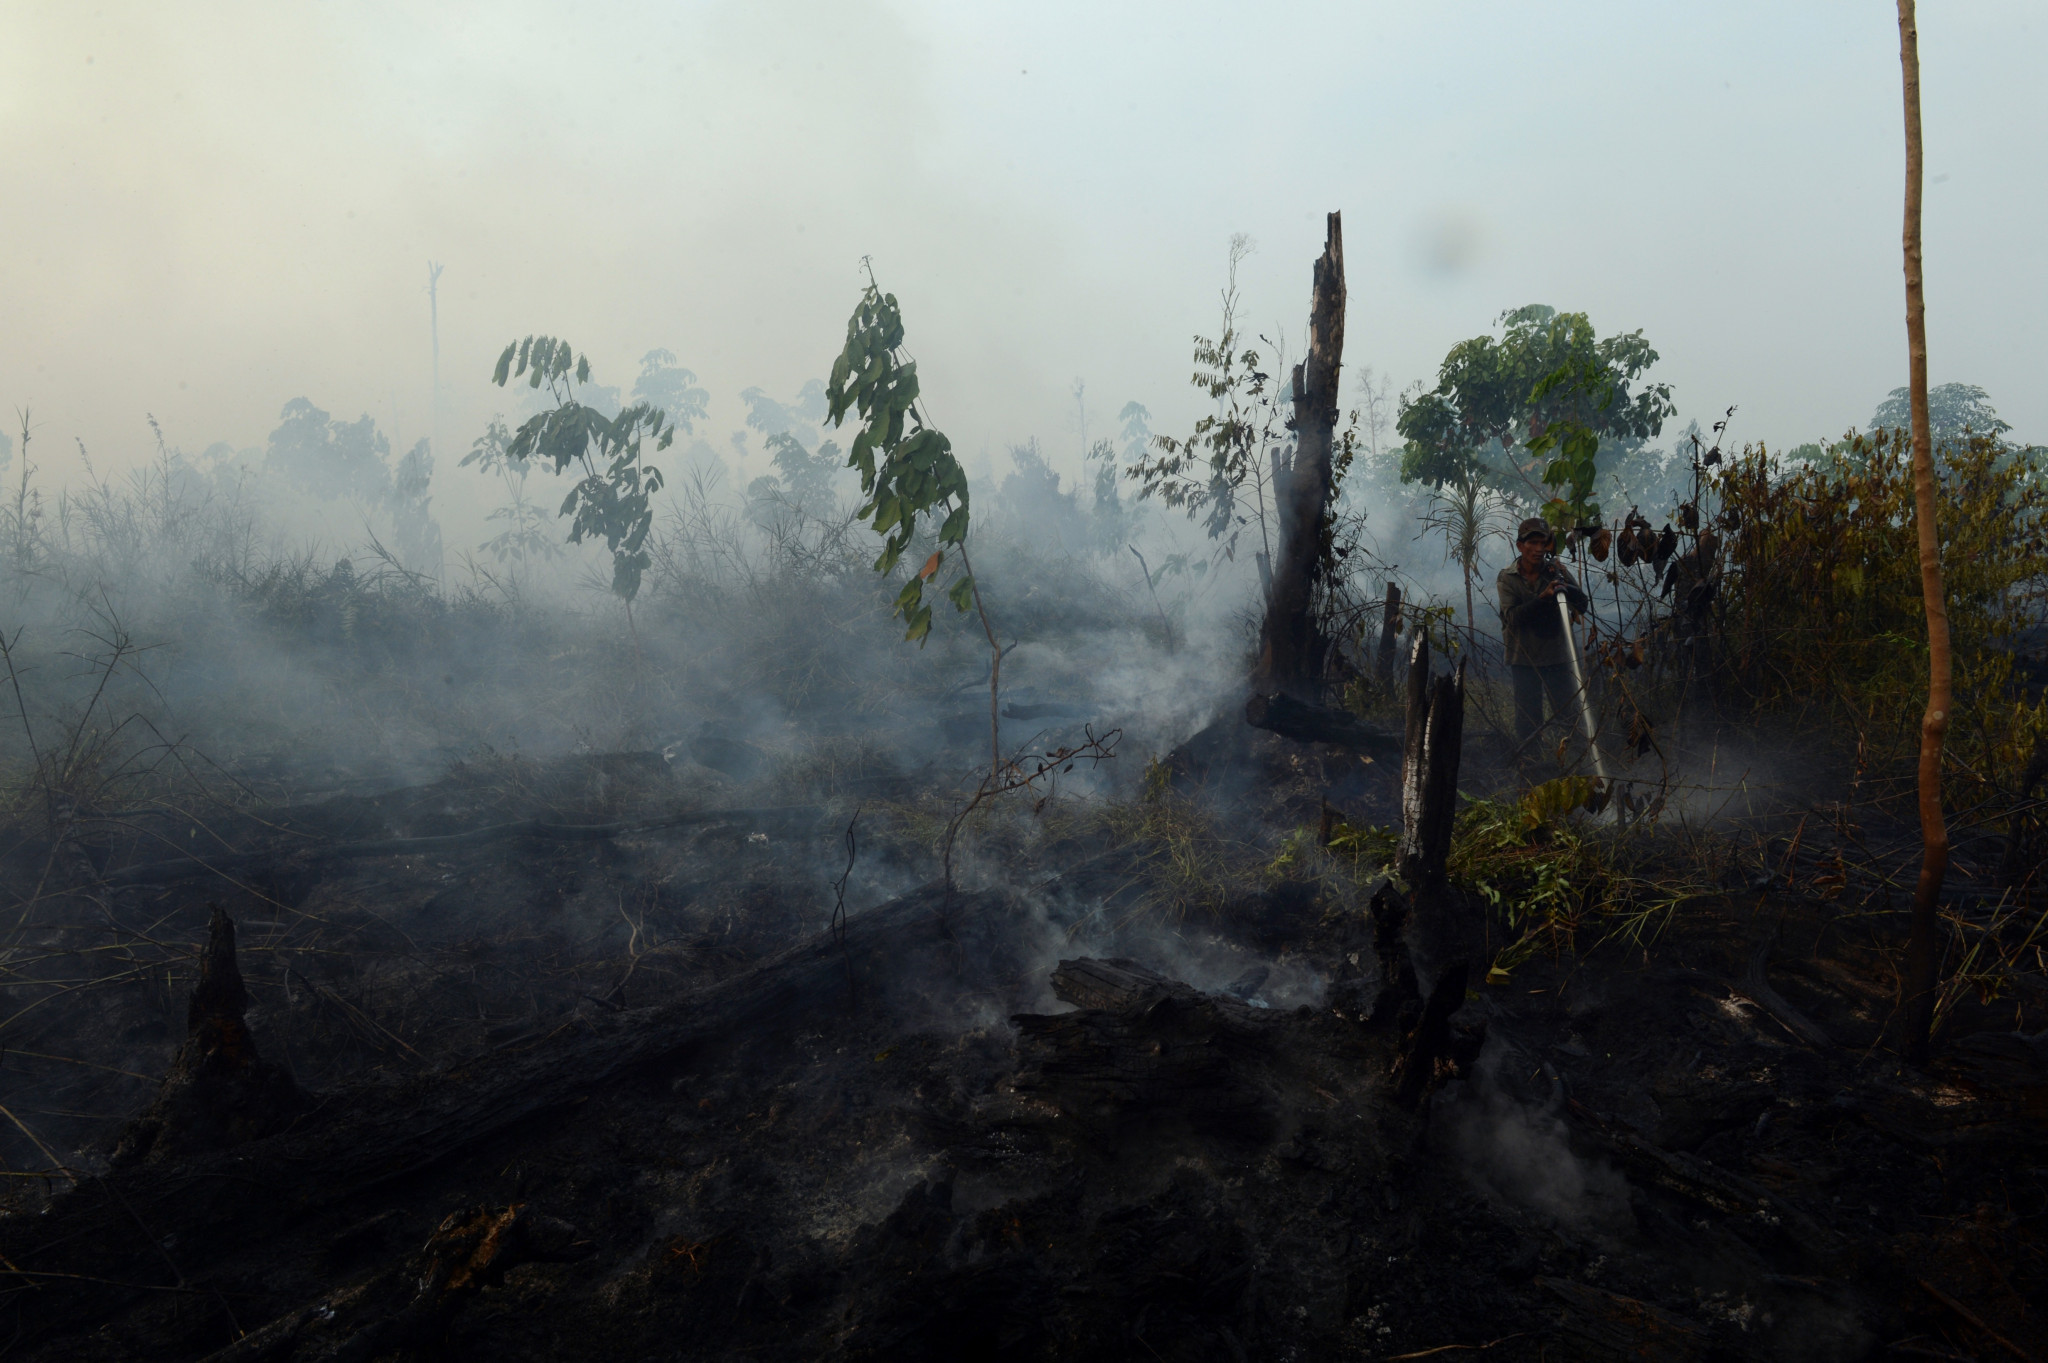 Indonesia has one of the highest deforestation rates in the world ©Getty Images